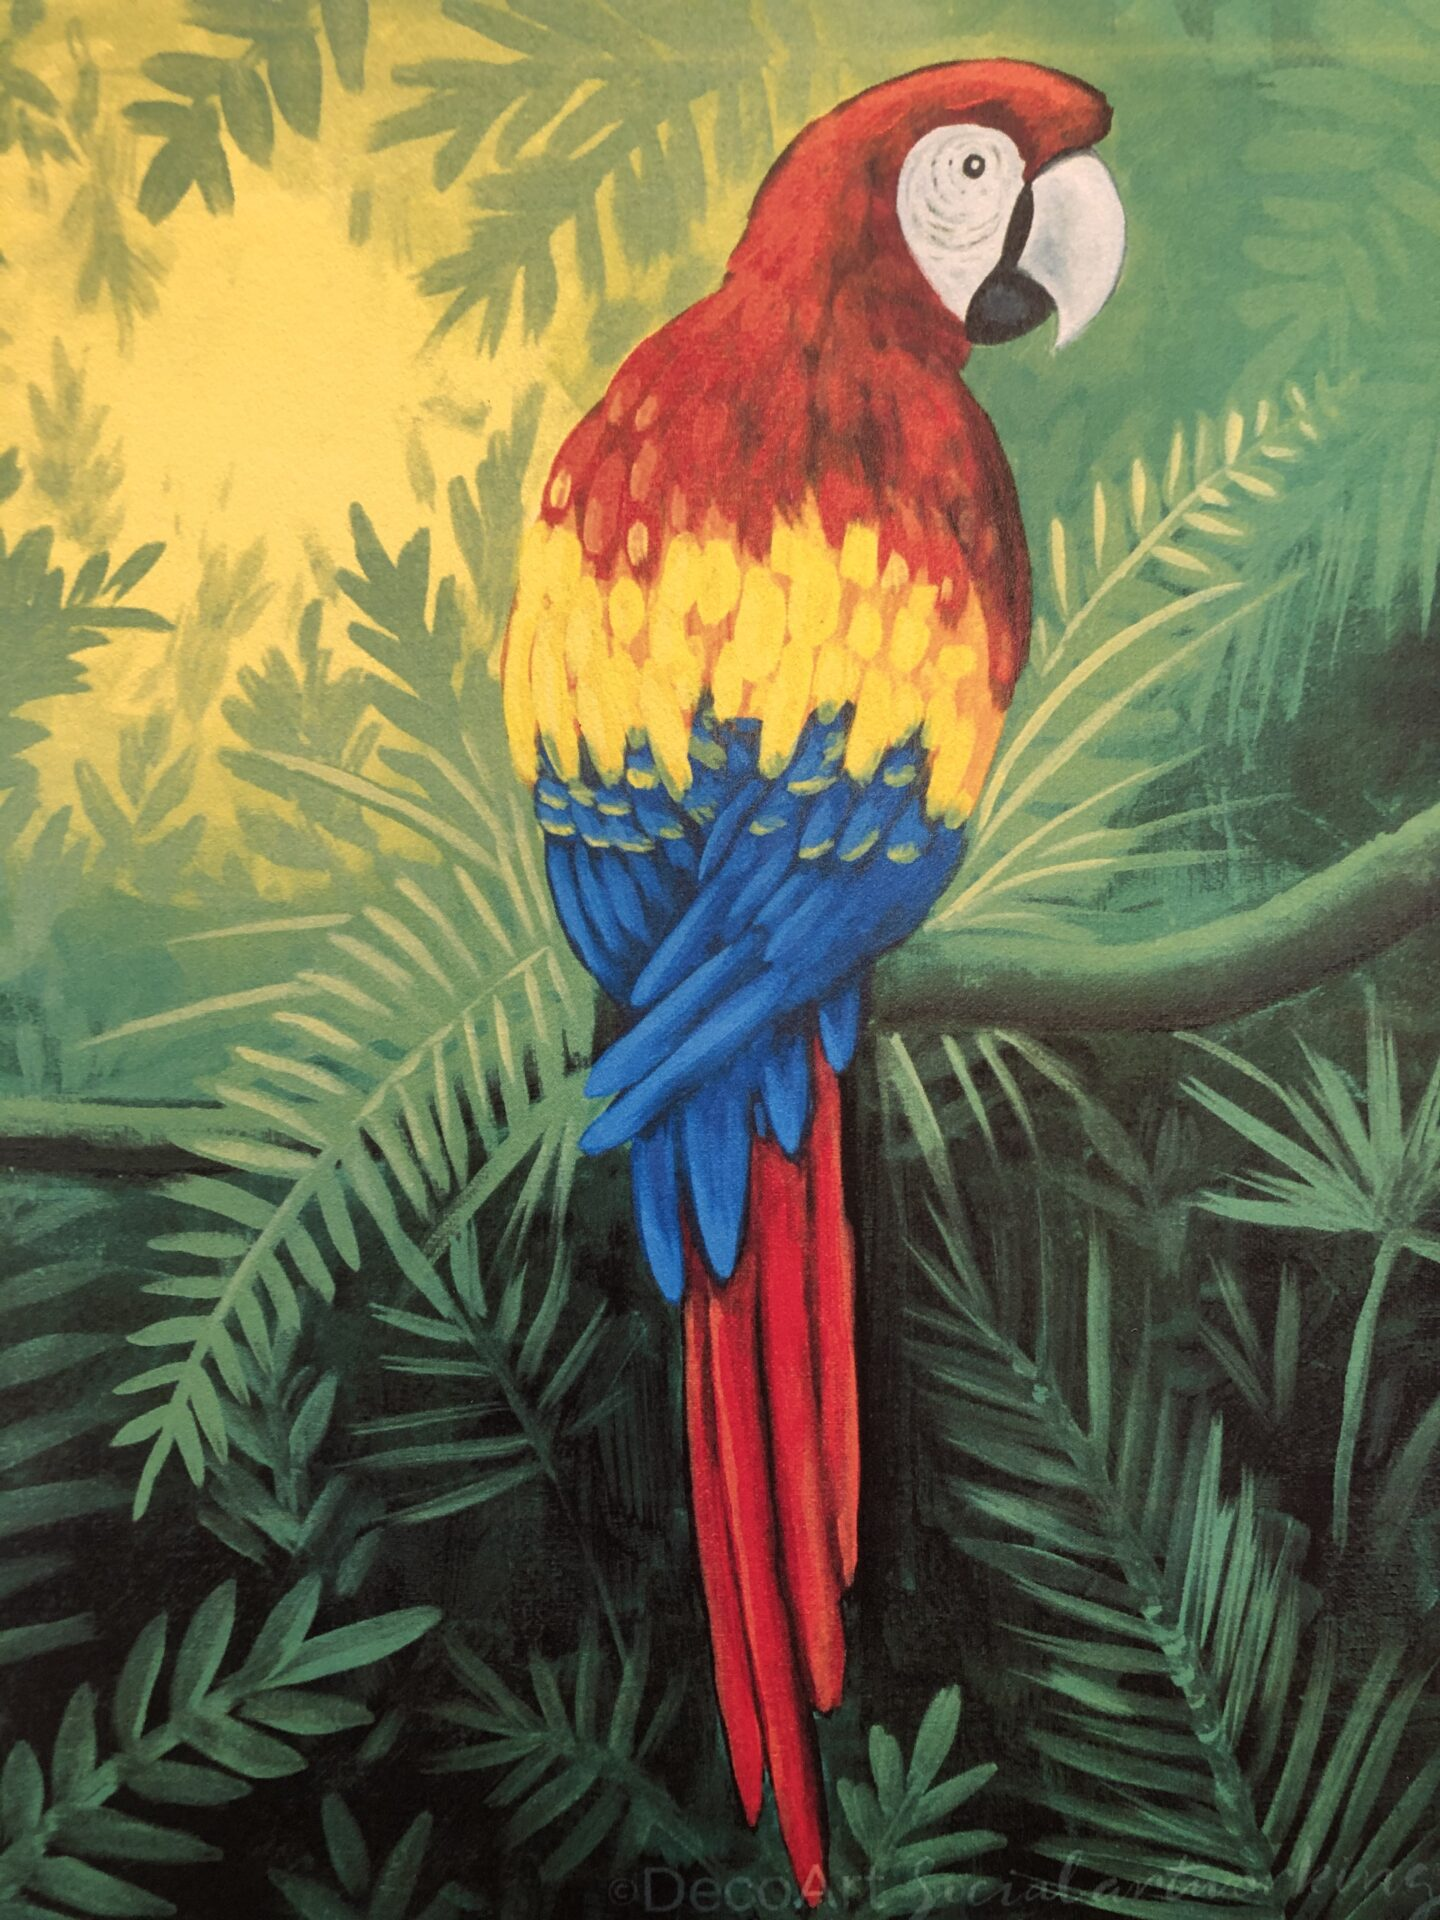 Mr. McCaw from uptown paint and sip painting classes in Jupiter FL